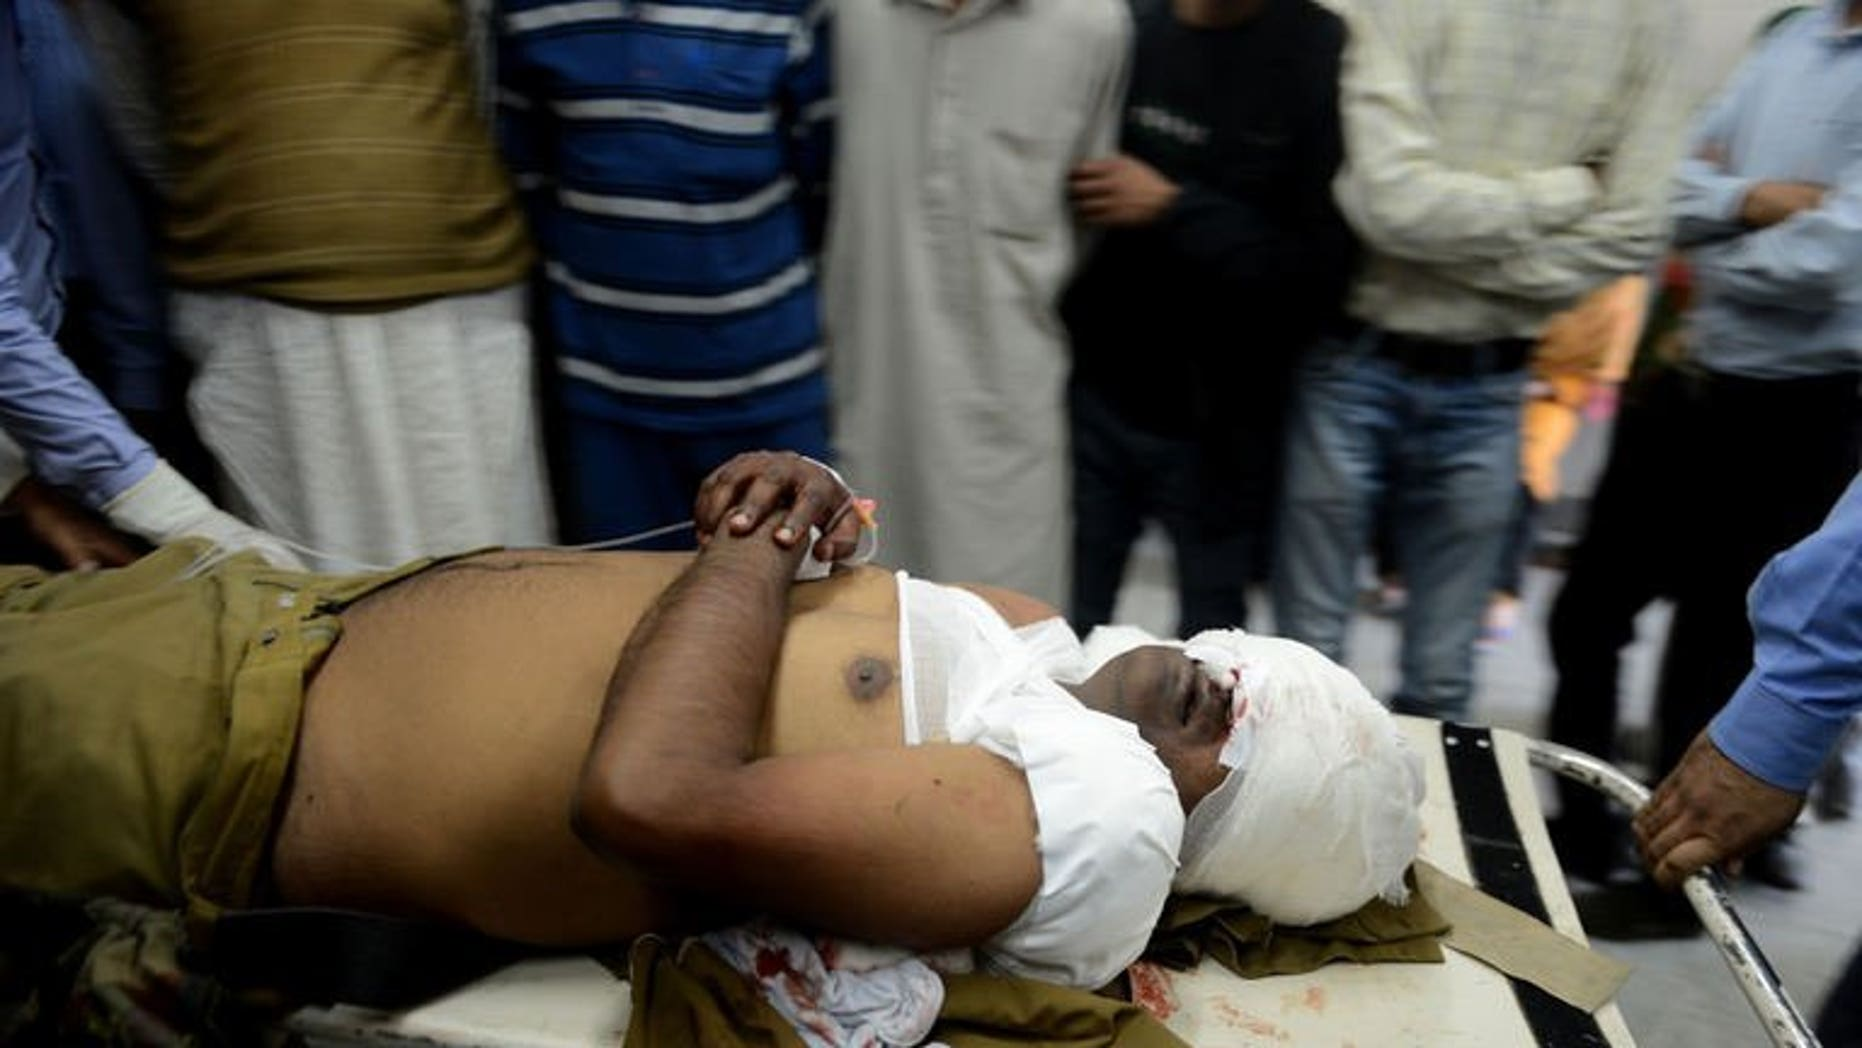 An injured Indian Central Industrial Security Force (CISF) soldier is carried through a hospital in Srinagar on September 23 ,2013. Suspected militants shot and killed a paramilitary soldier and critically wounded another on Monday in a busy market in Indian Kashmir's main city of Srinagar, police said.